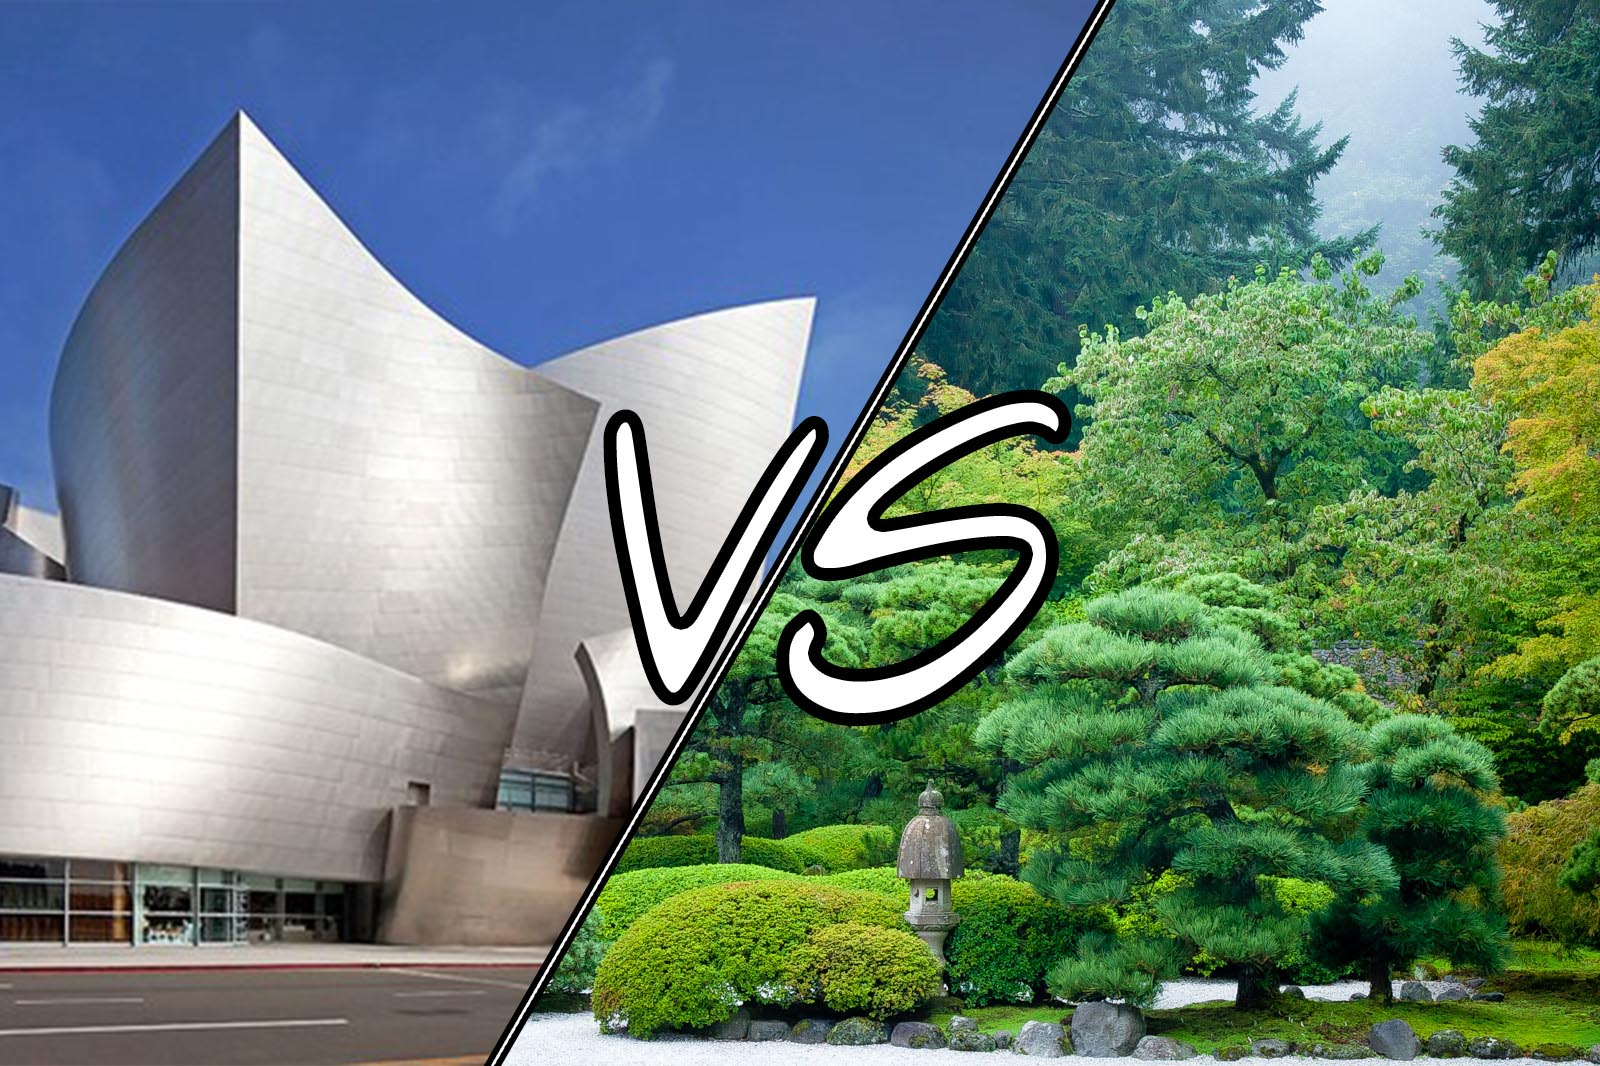 Gehry VS Garden - the ultimate architectural showdown